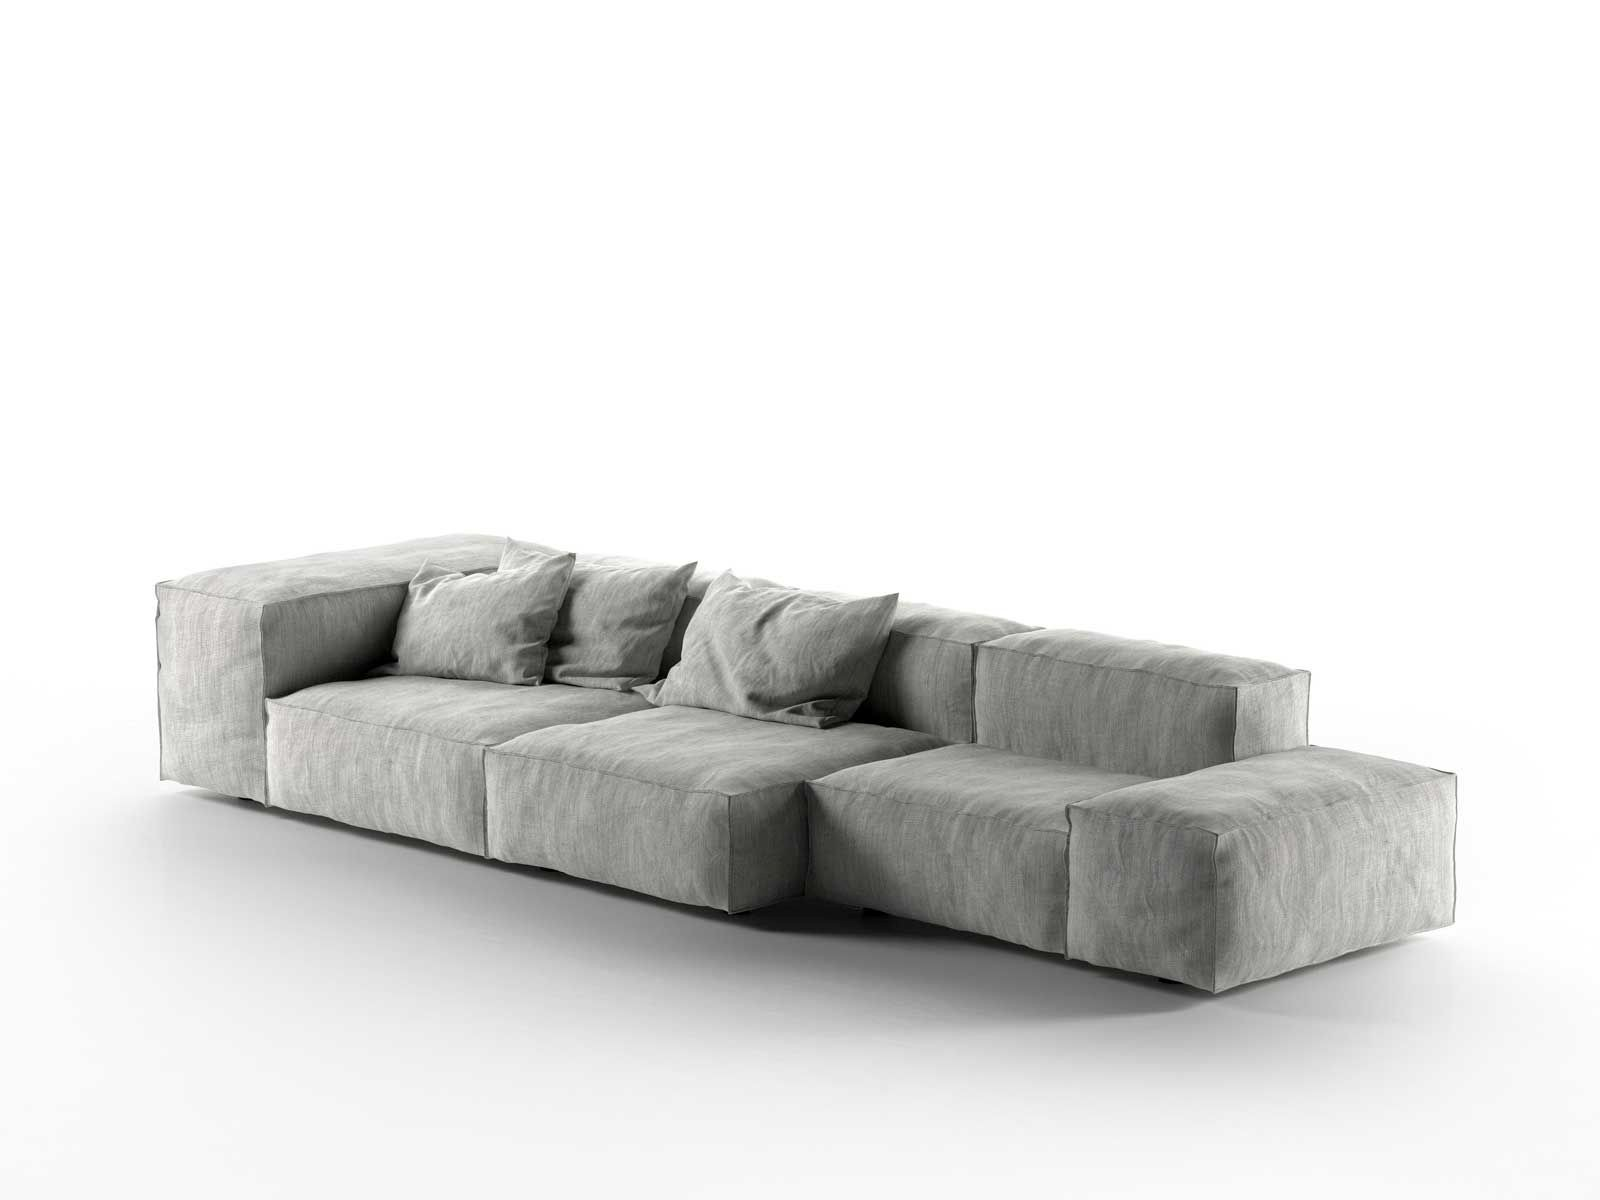 Stunning Living Divani Sofa Decoration